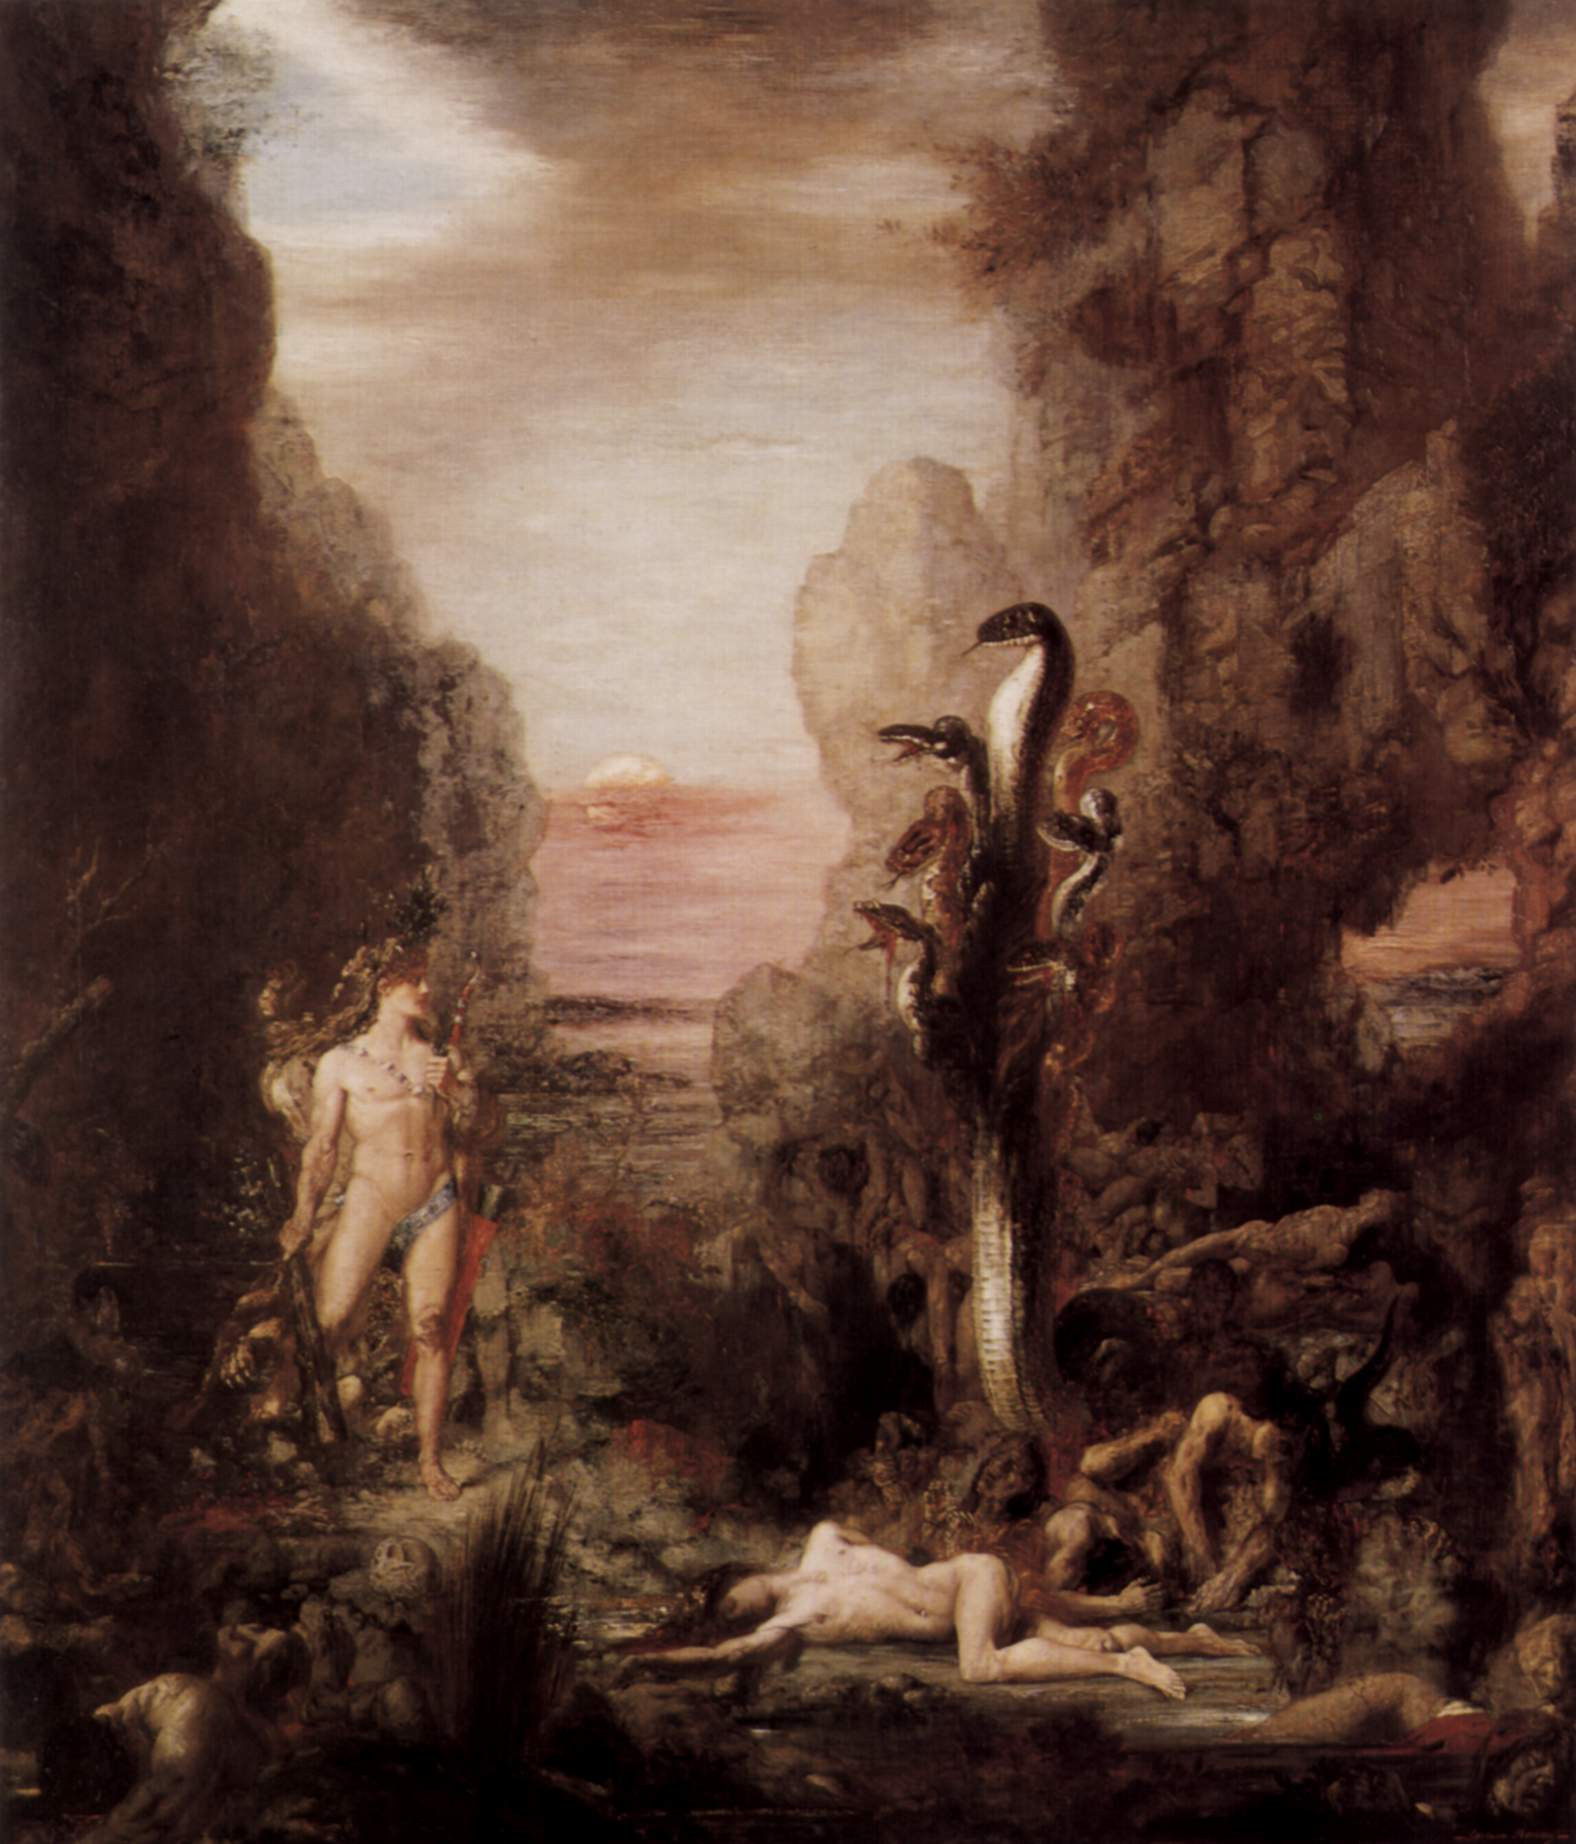 Gustave Moreau's 19th-century depiction of the Hydra, influenced by the Beast from the Book of Revelation